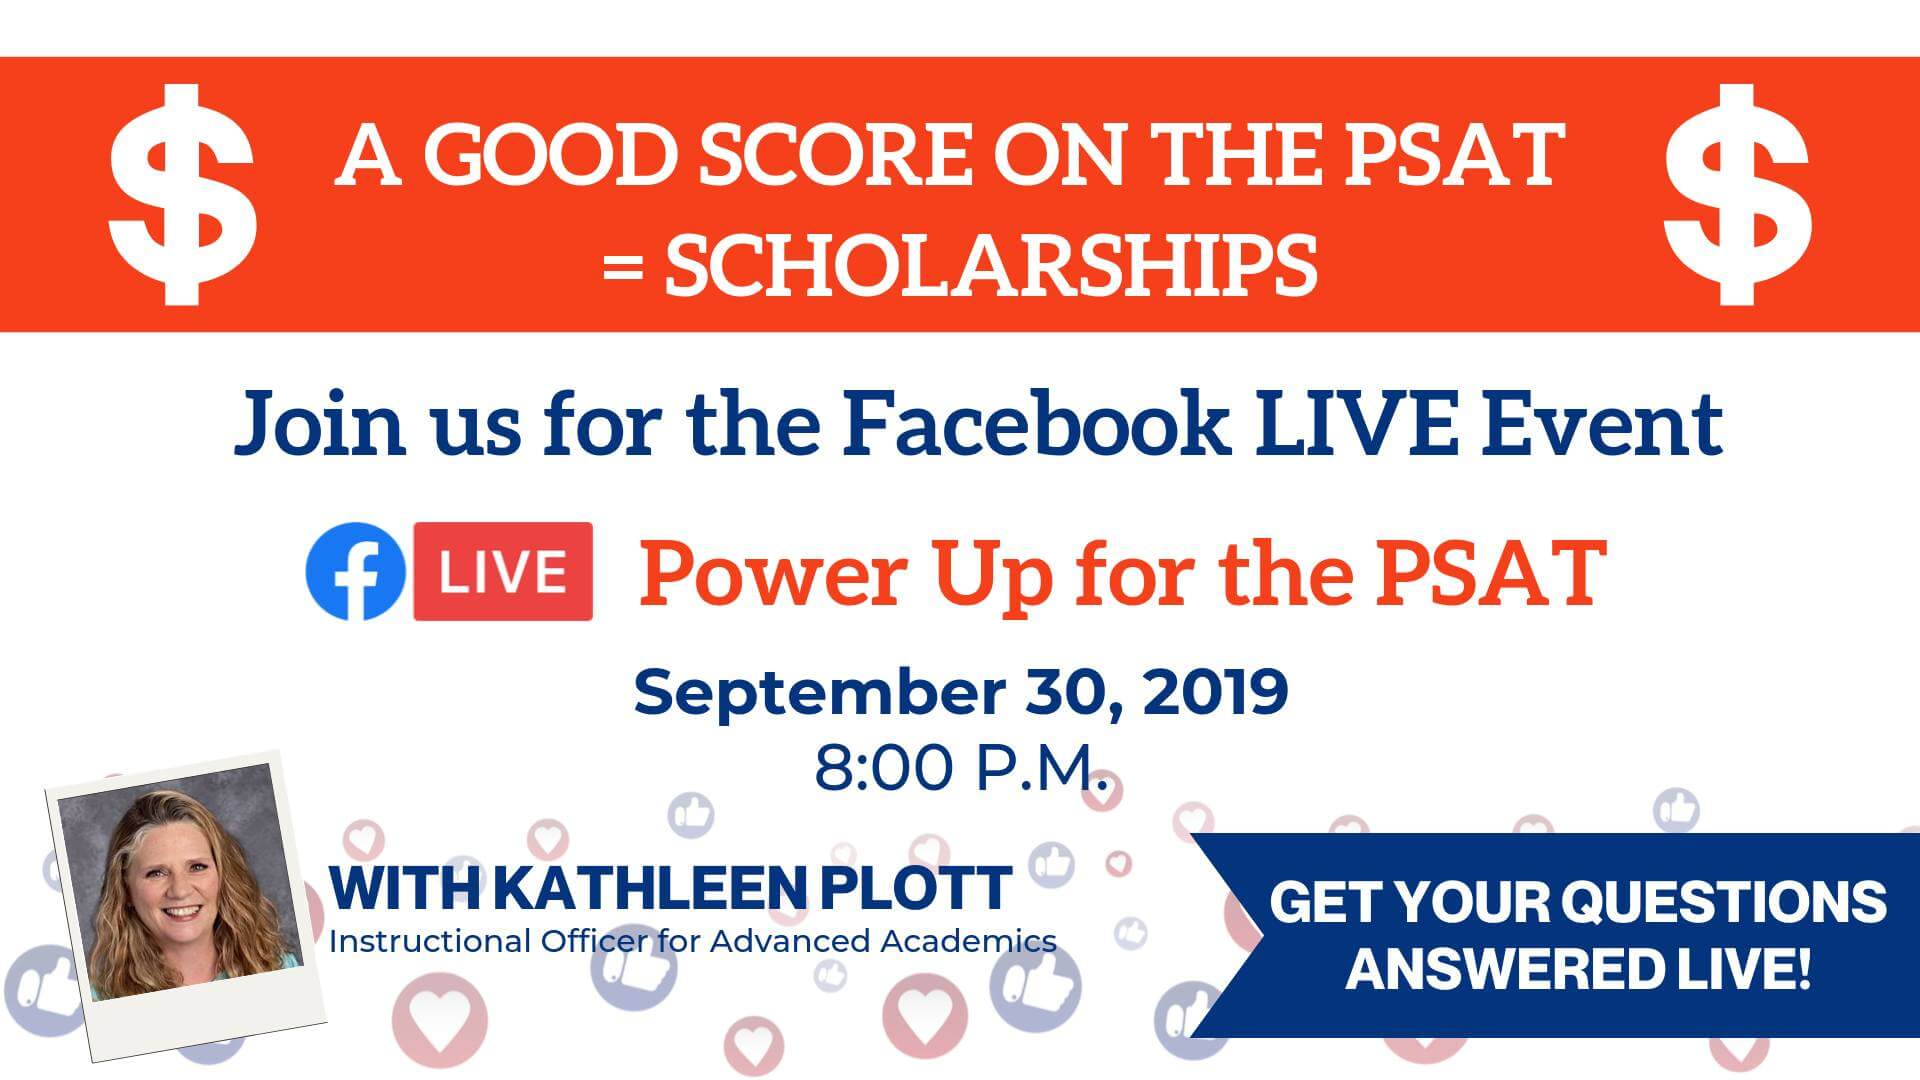 Power Up for the PSAT Facebook Live Event